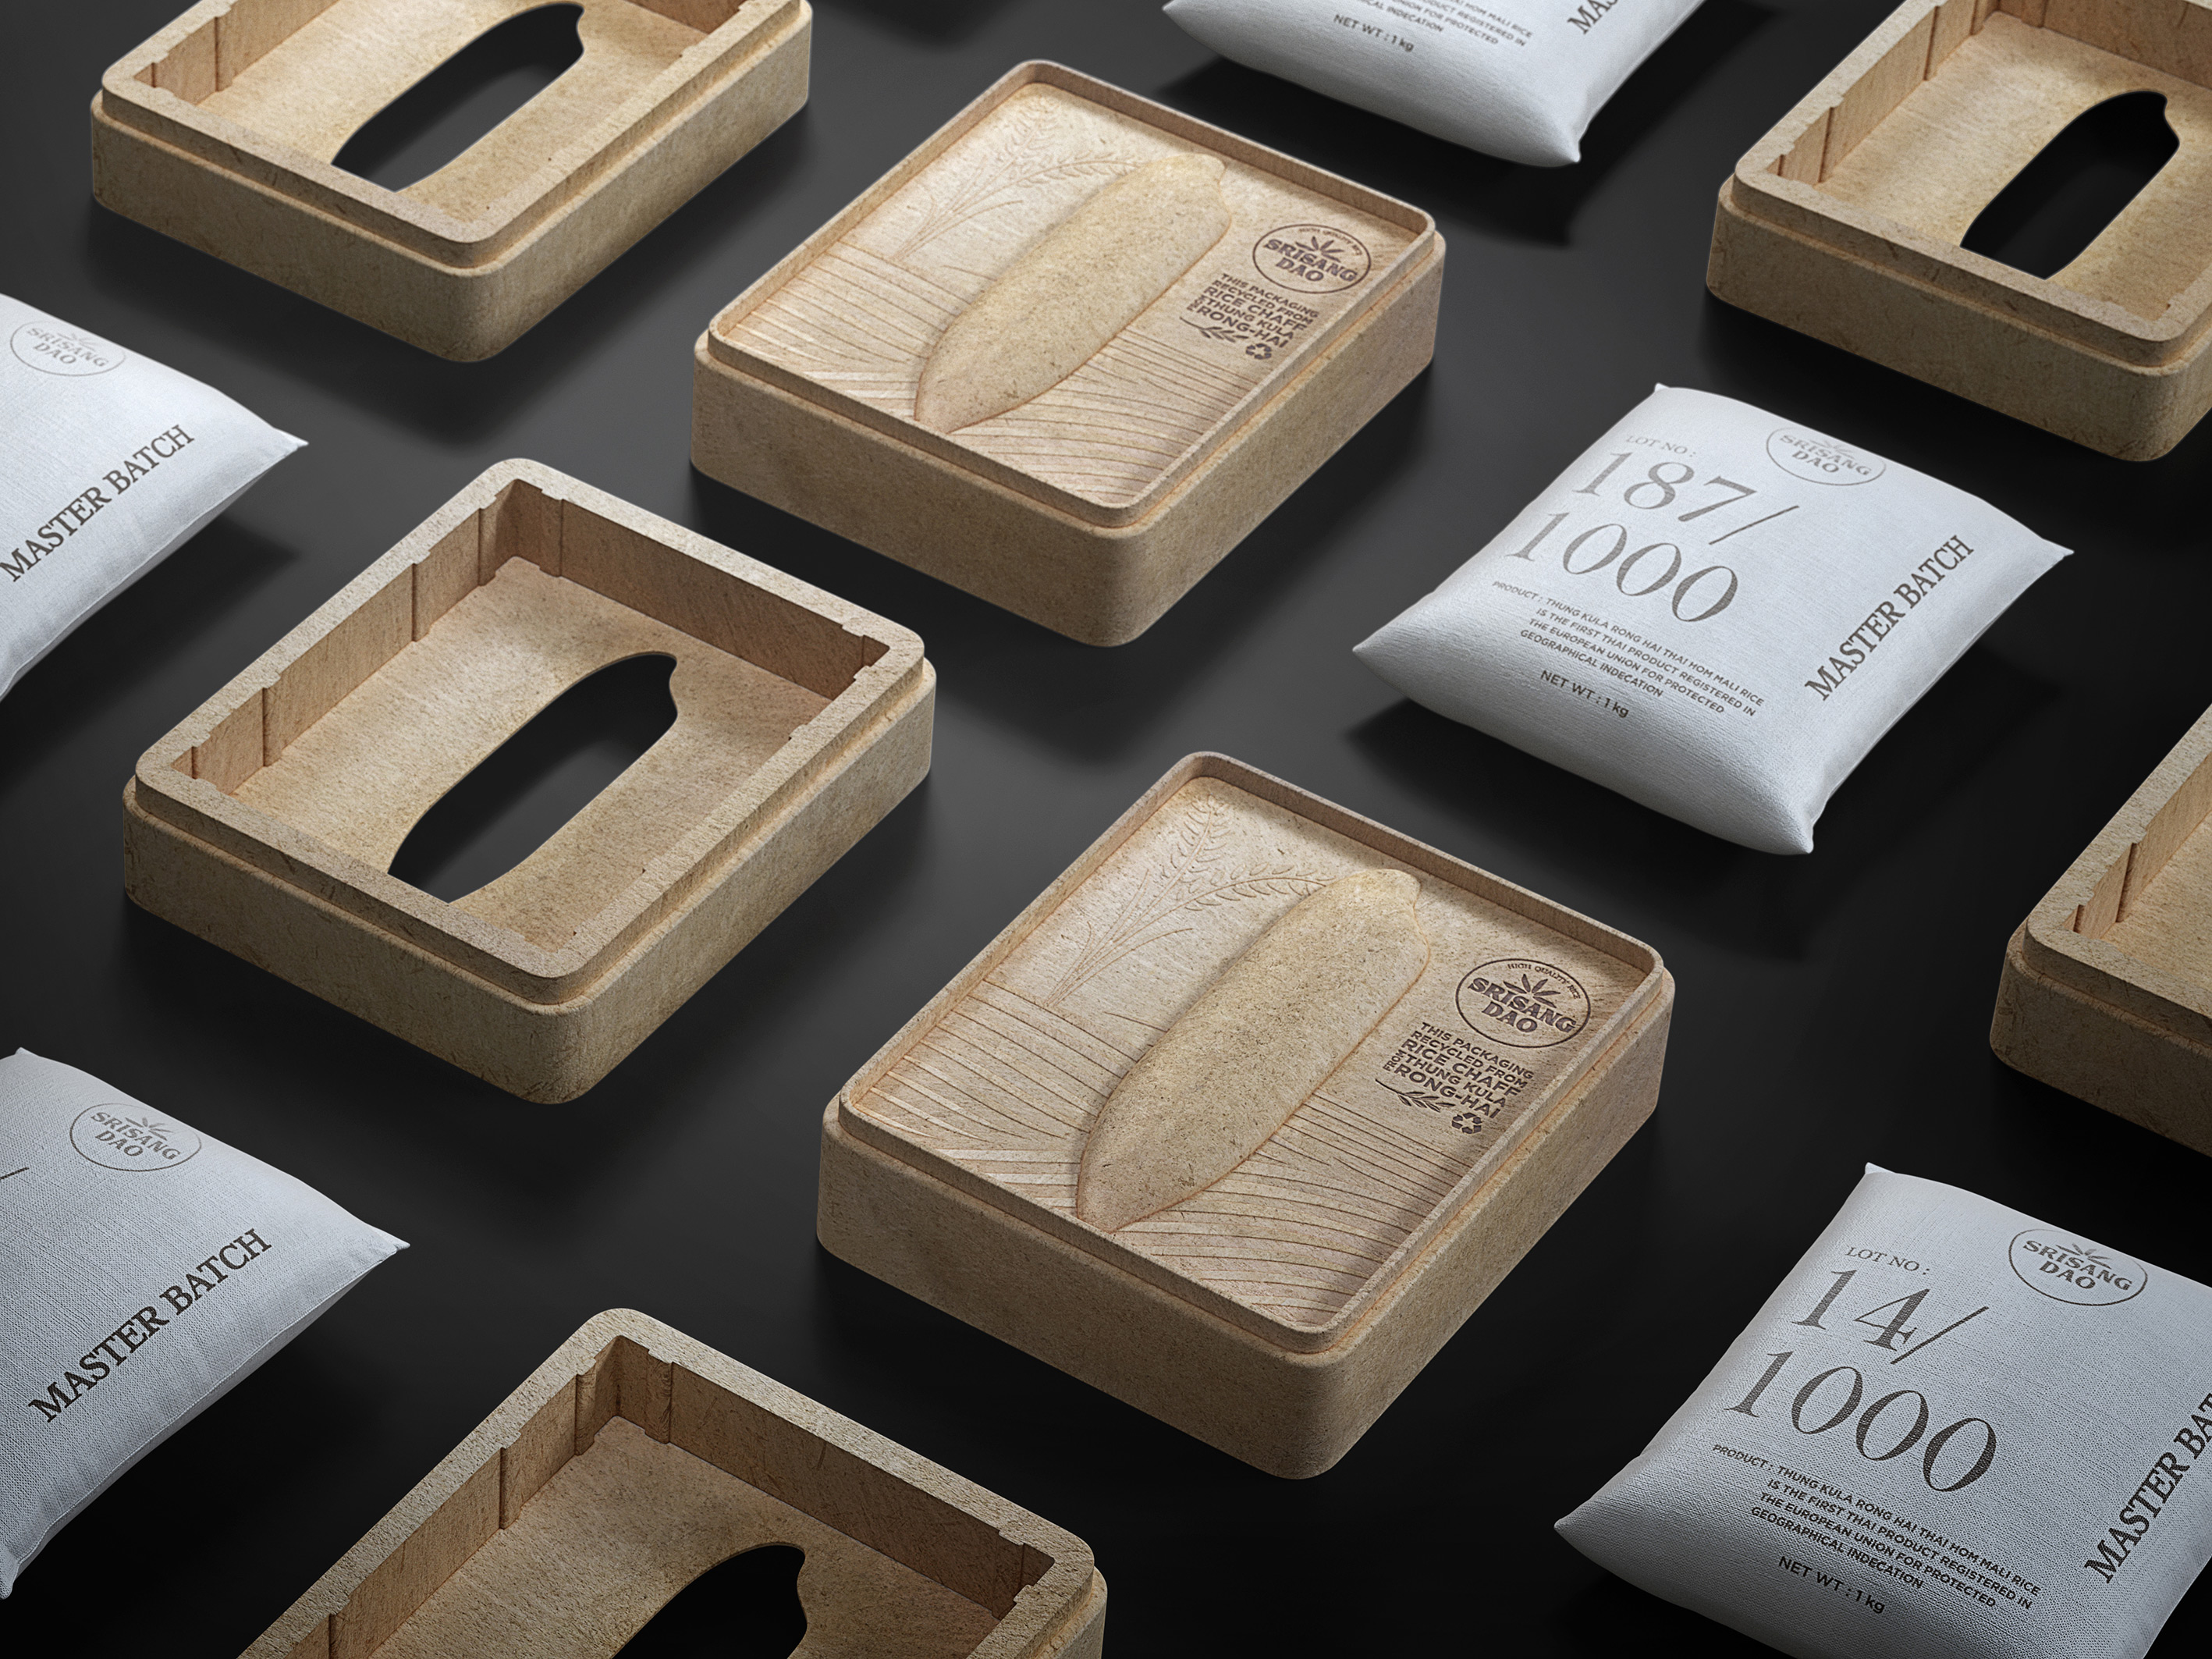 Packaging Recycled from Rice Chaff